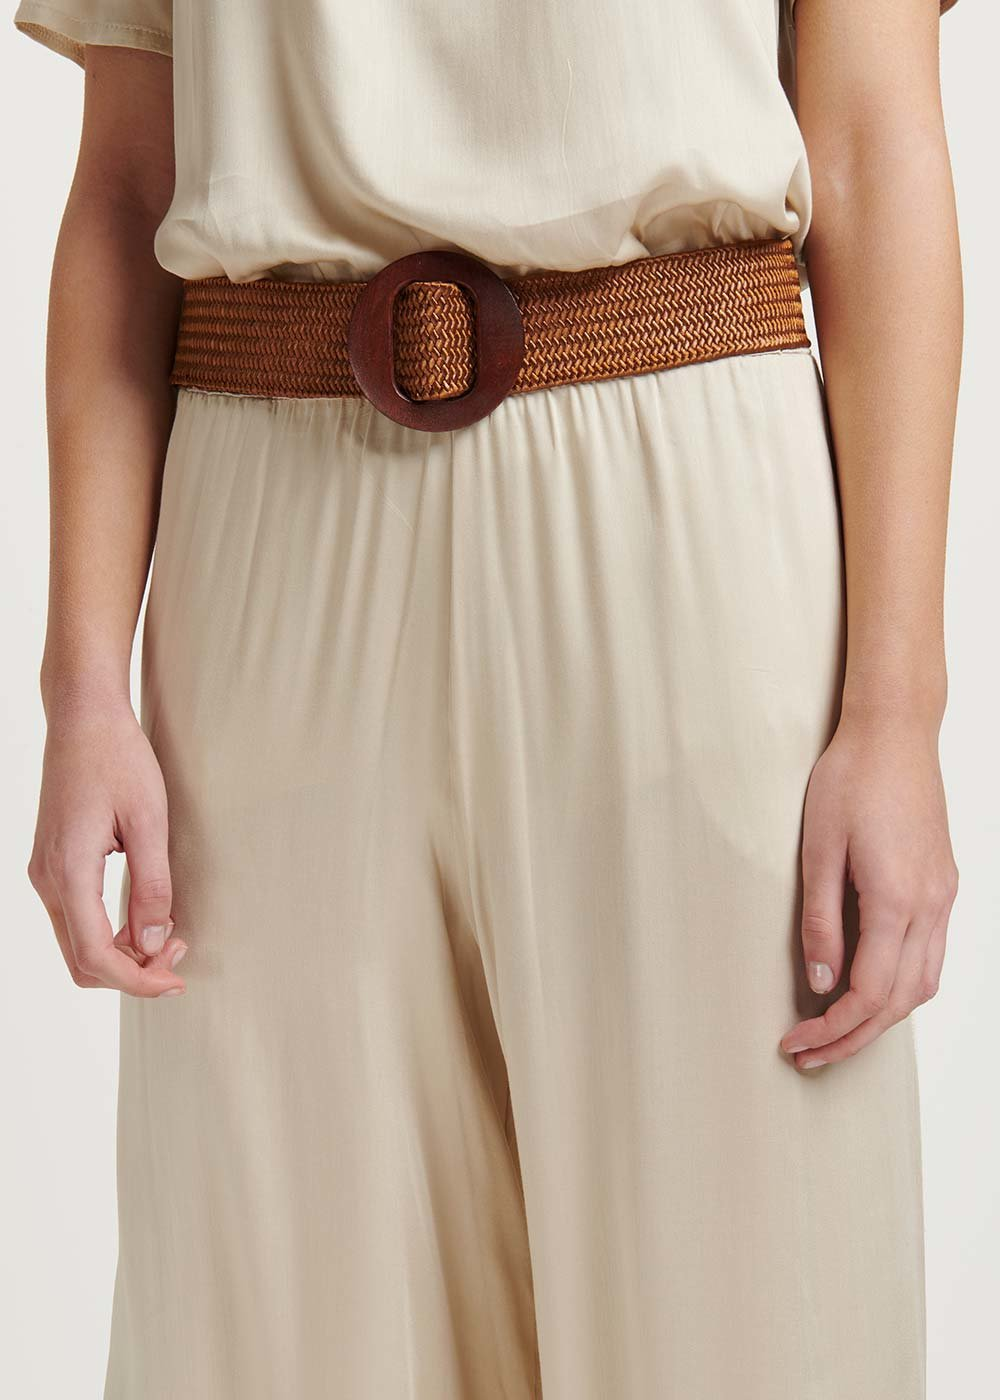 Cassie belt with wooden buckle - Cocoa - Woman